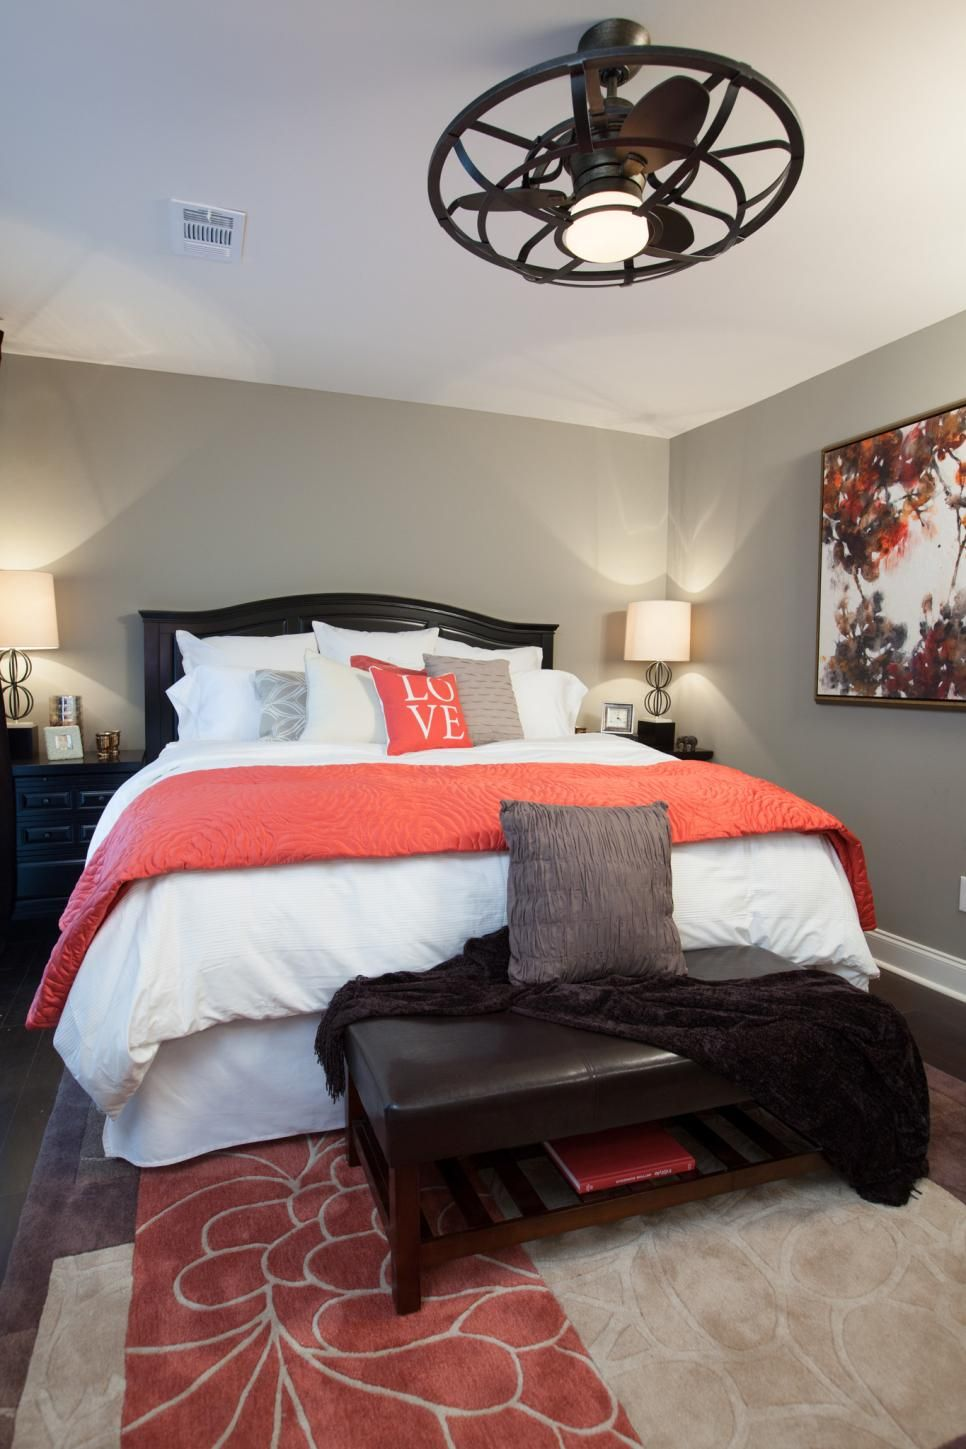 MASTER BEDROOM, AFTER: This newly renovated bedroom is warm and inviting with brand new hardwood floors, unique ceiling fan and pops of coral through the room. #graybedroomwithpopofcolor